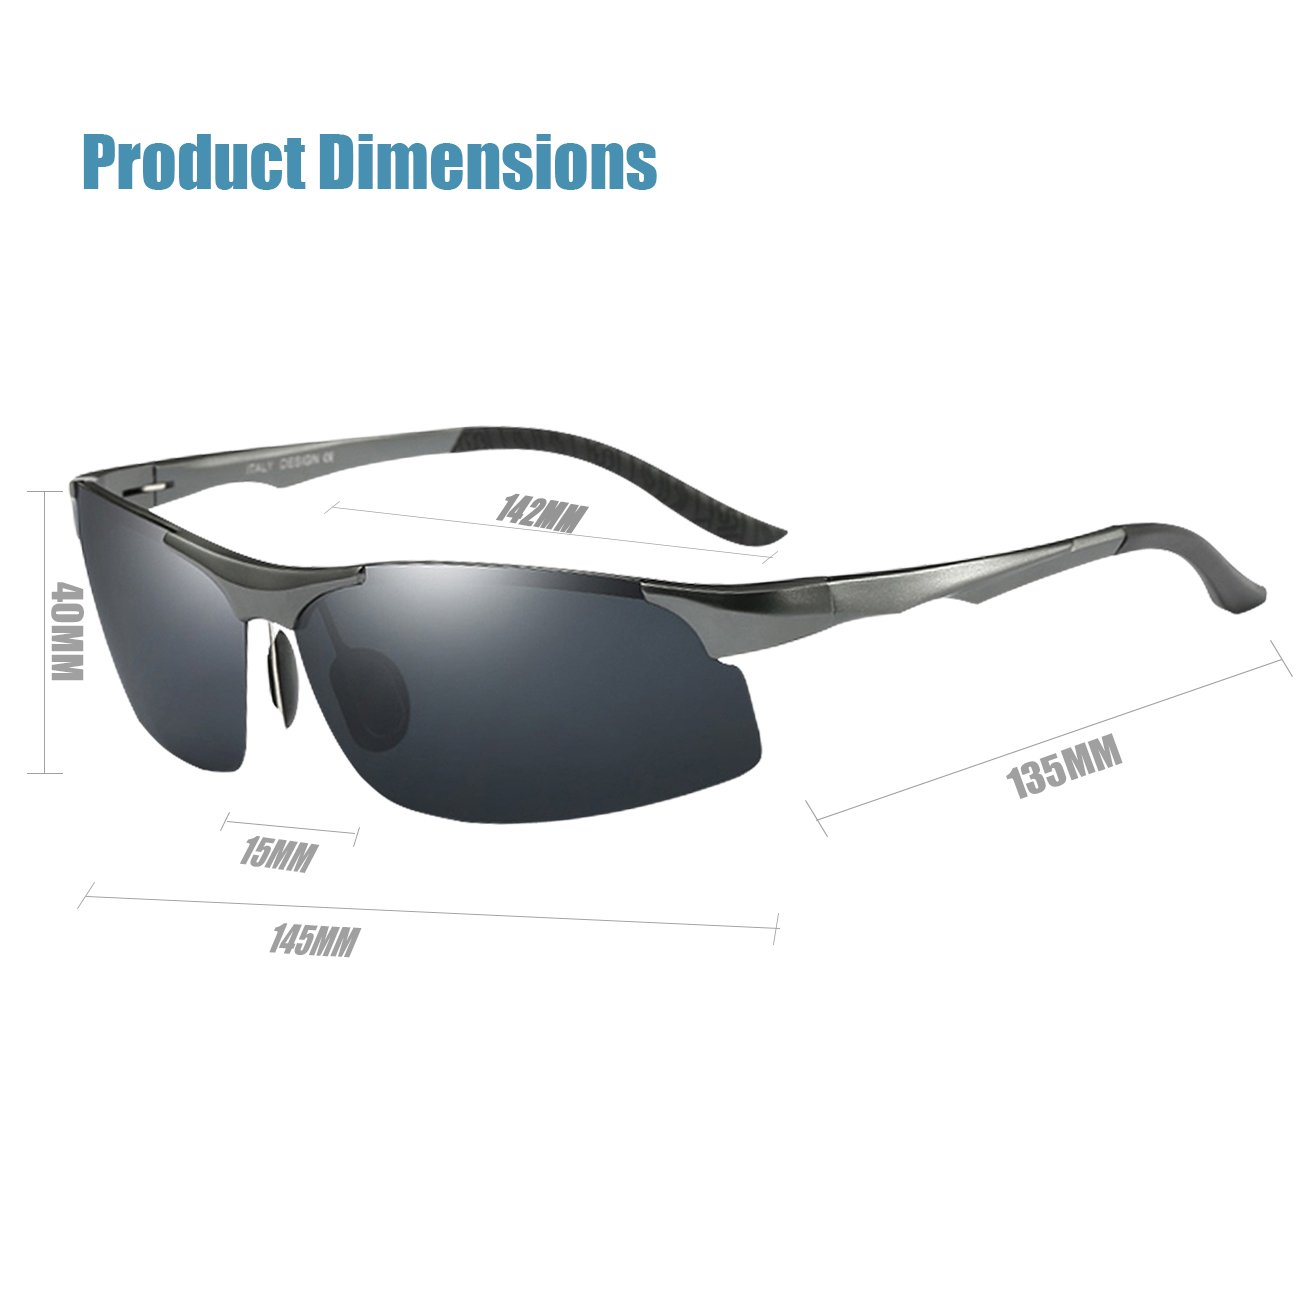 9b095fed7b COSVER 8003 Men s Sports Style Polarized Sunglasses for Driving Fishing  Golf Glass (Gray